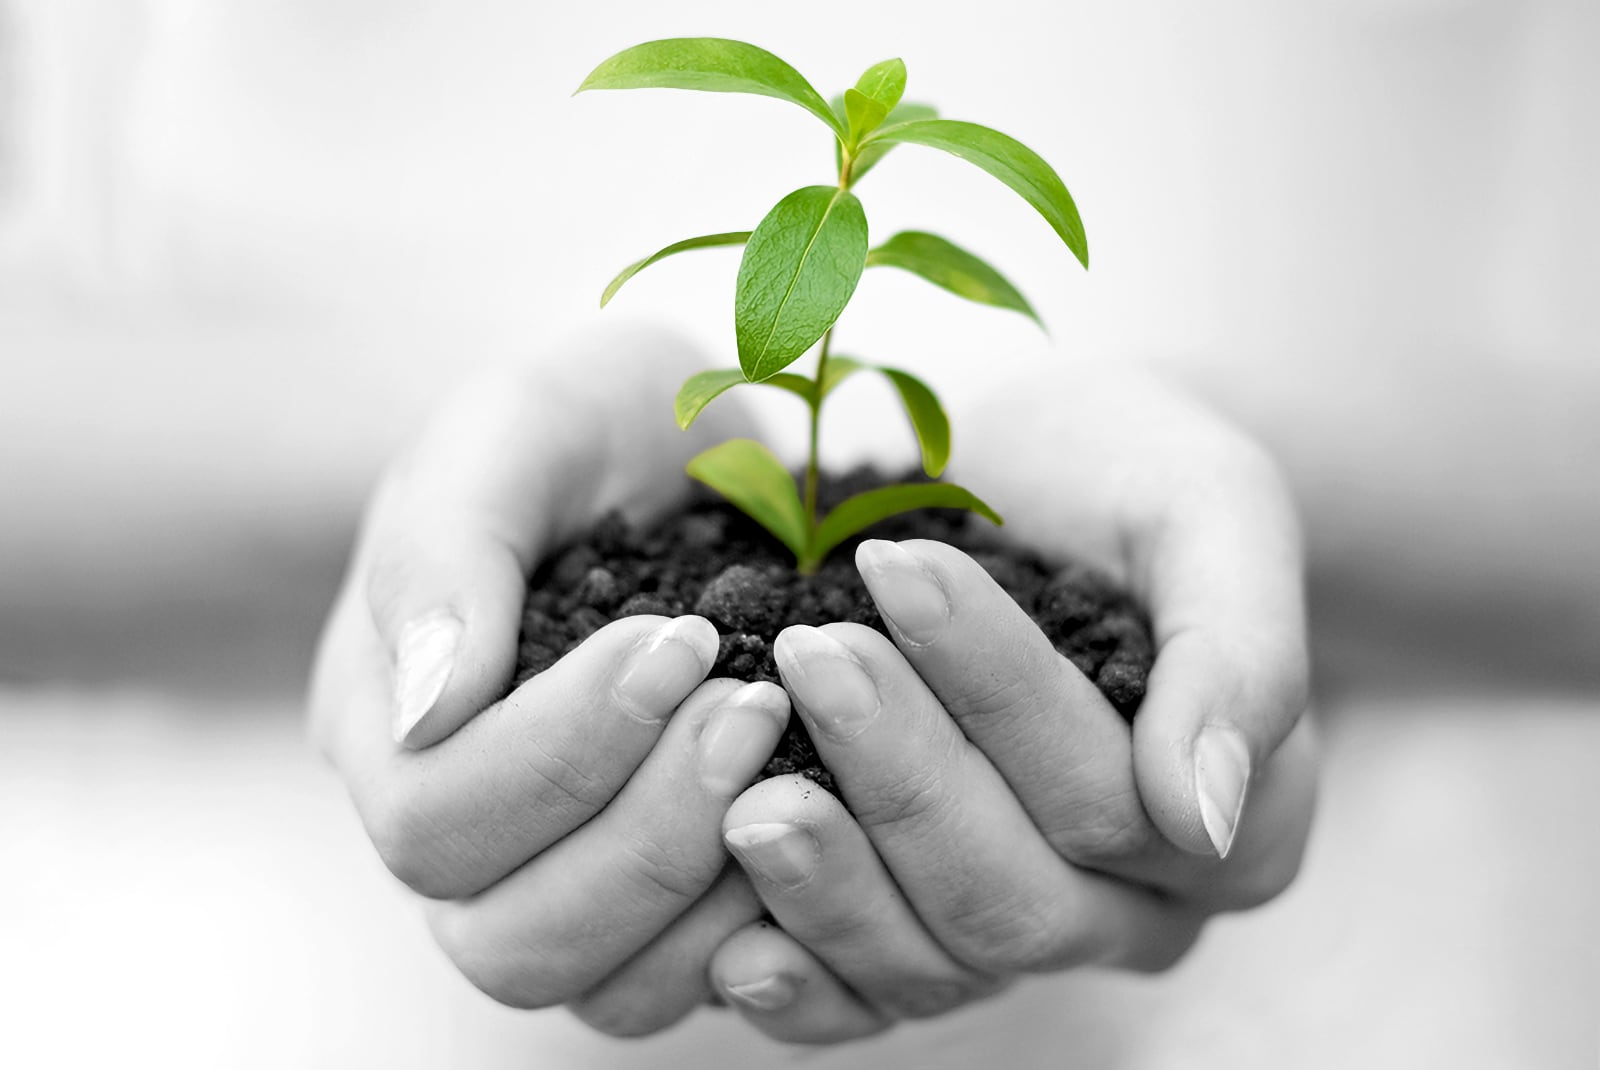 A close-up photo of a female's hands cupping a single green plant in soil